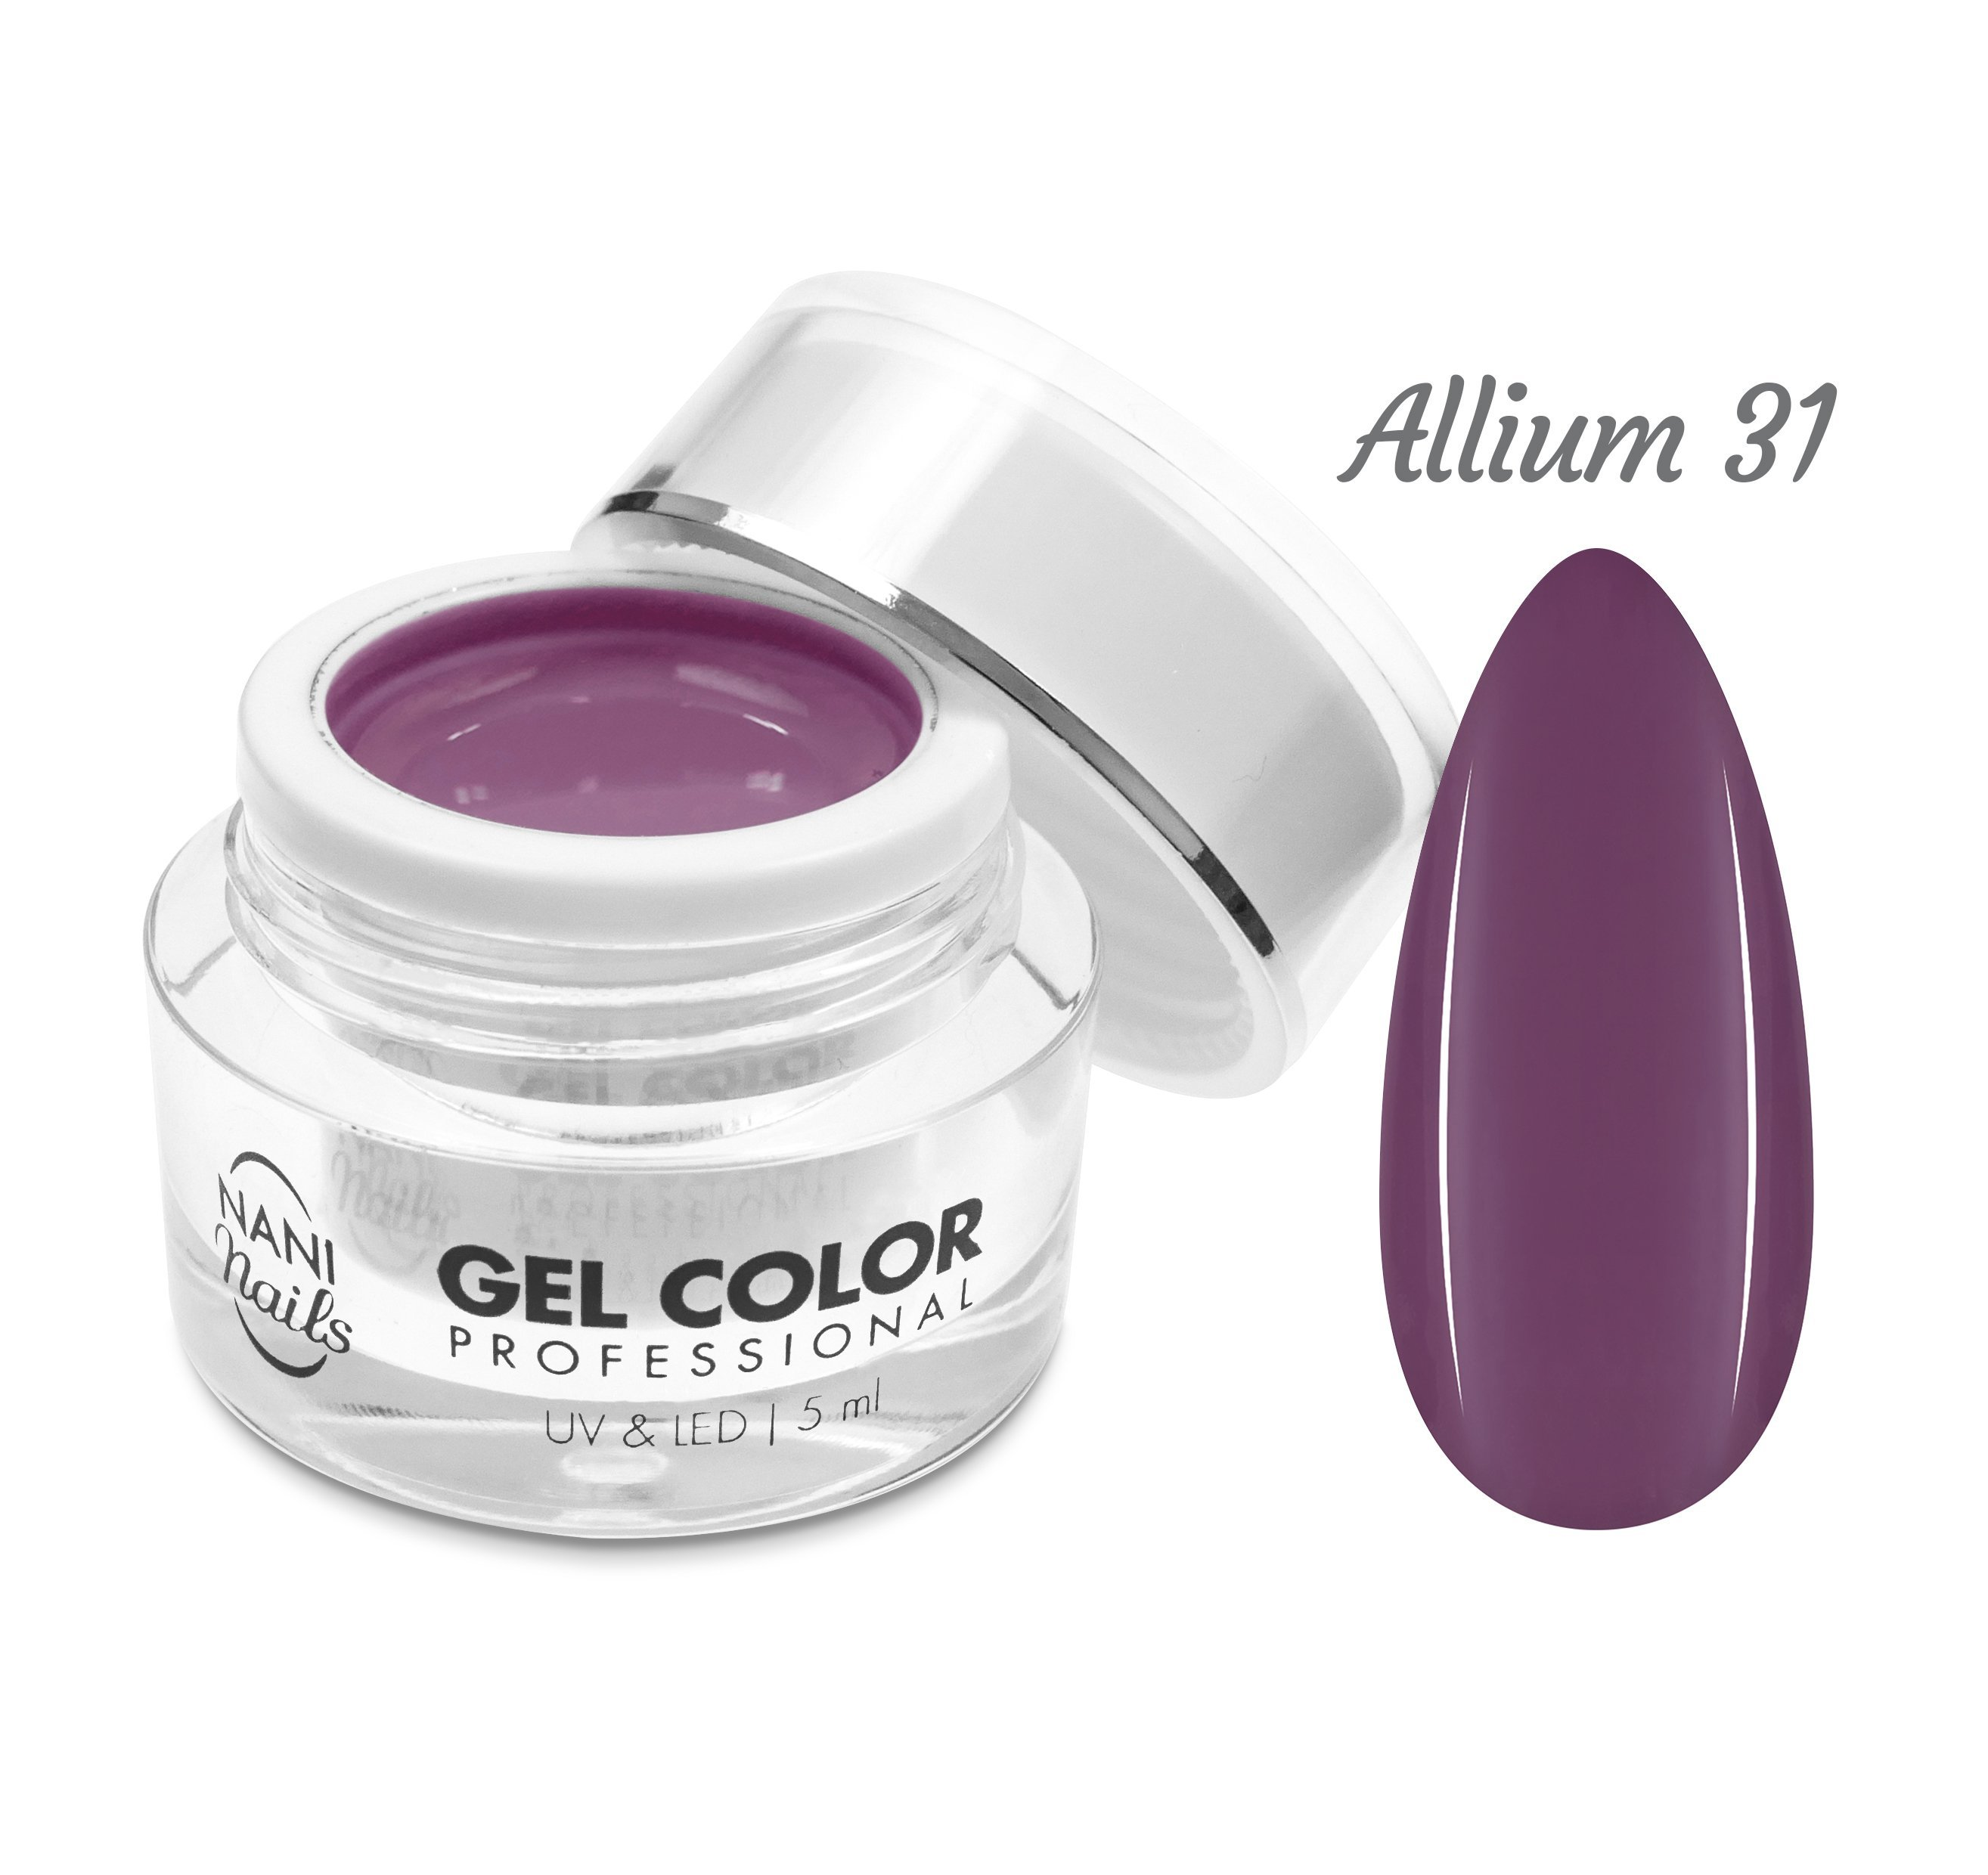 NANI UV/LED gél Professional 5 ml - Allium